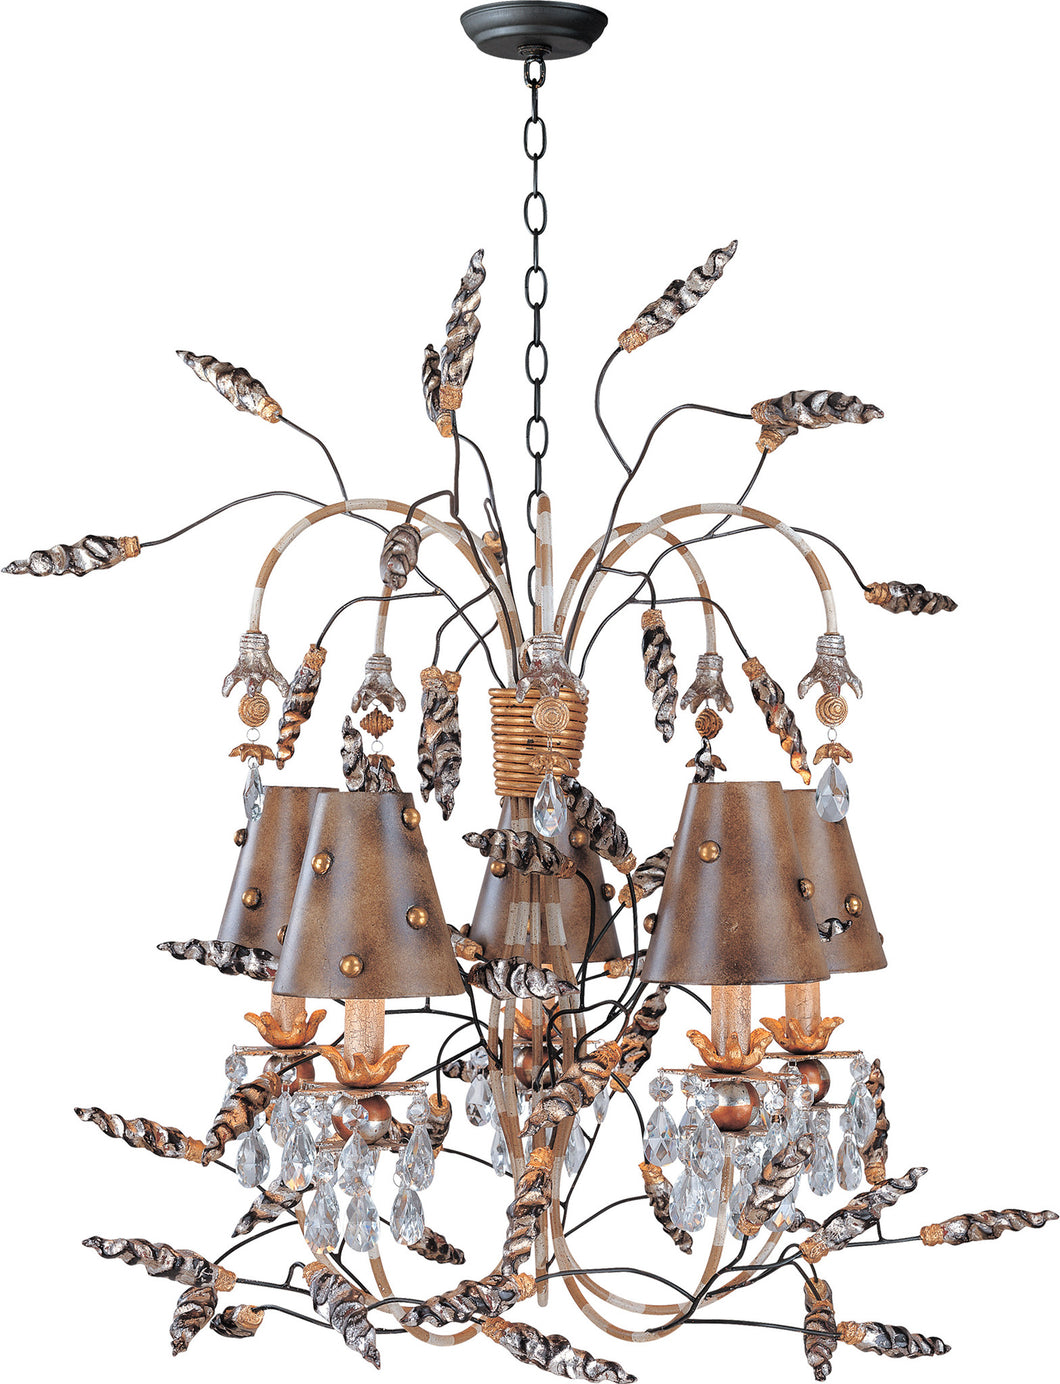 5 Light Chandelier Lighting Laura of Pembroke - Laura of Pembroke Canton Ohio Boutique